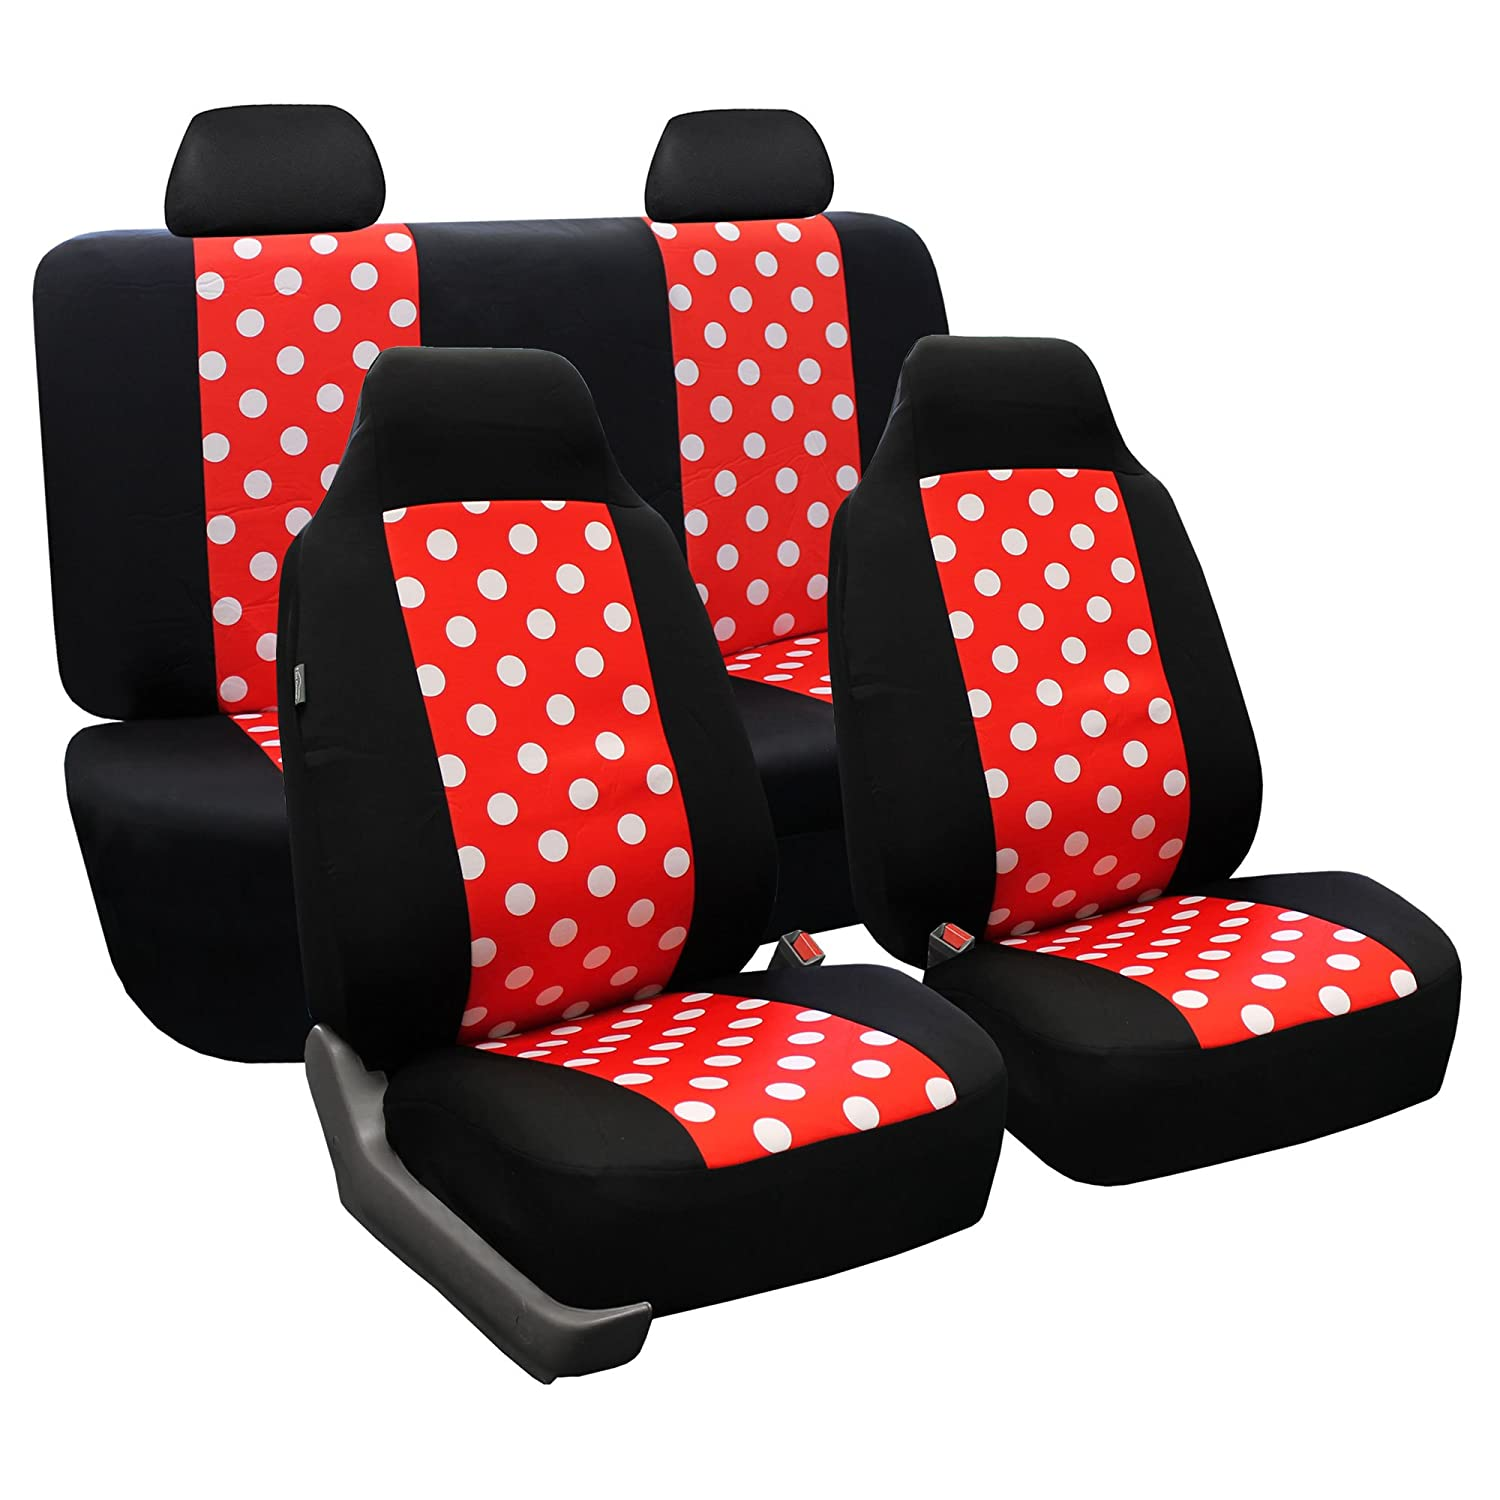 FH Group FH-FB032115 Unique Flat Cloth Seat Covers, Gray/Black Color- Fit Most Car, Truck, Suv, or Van